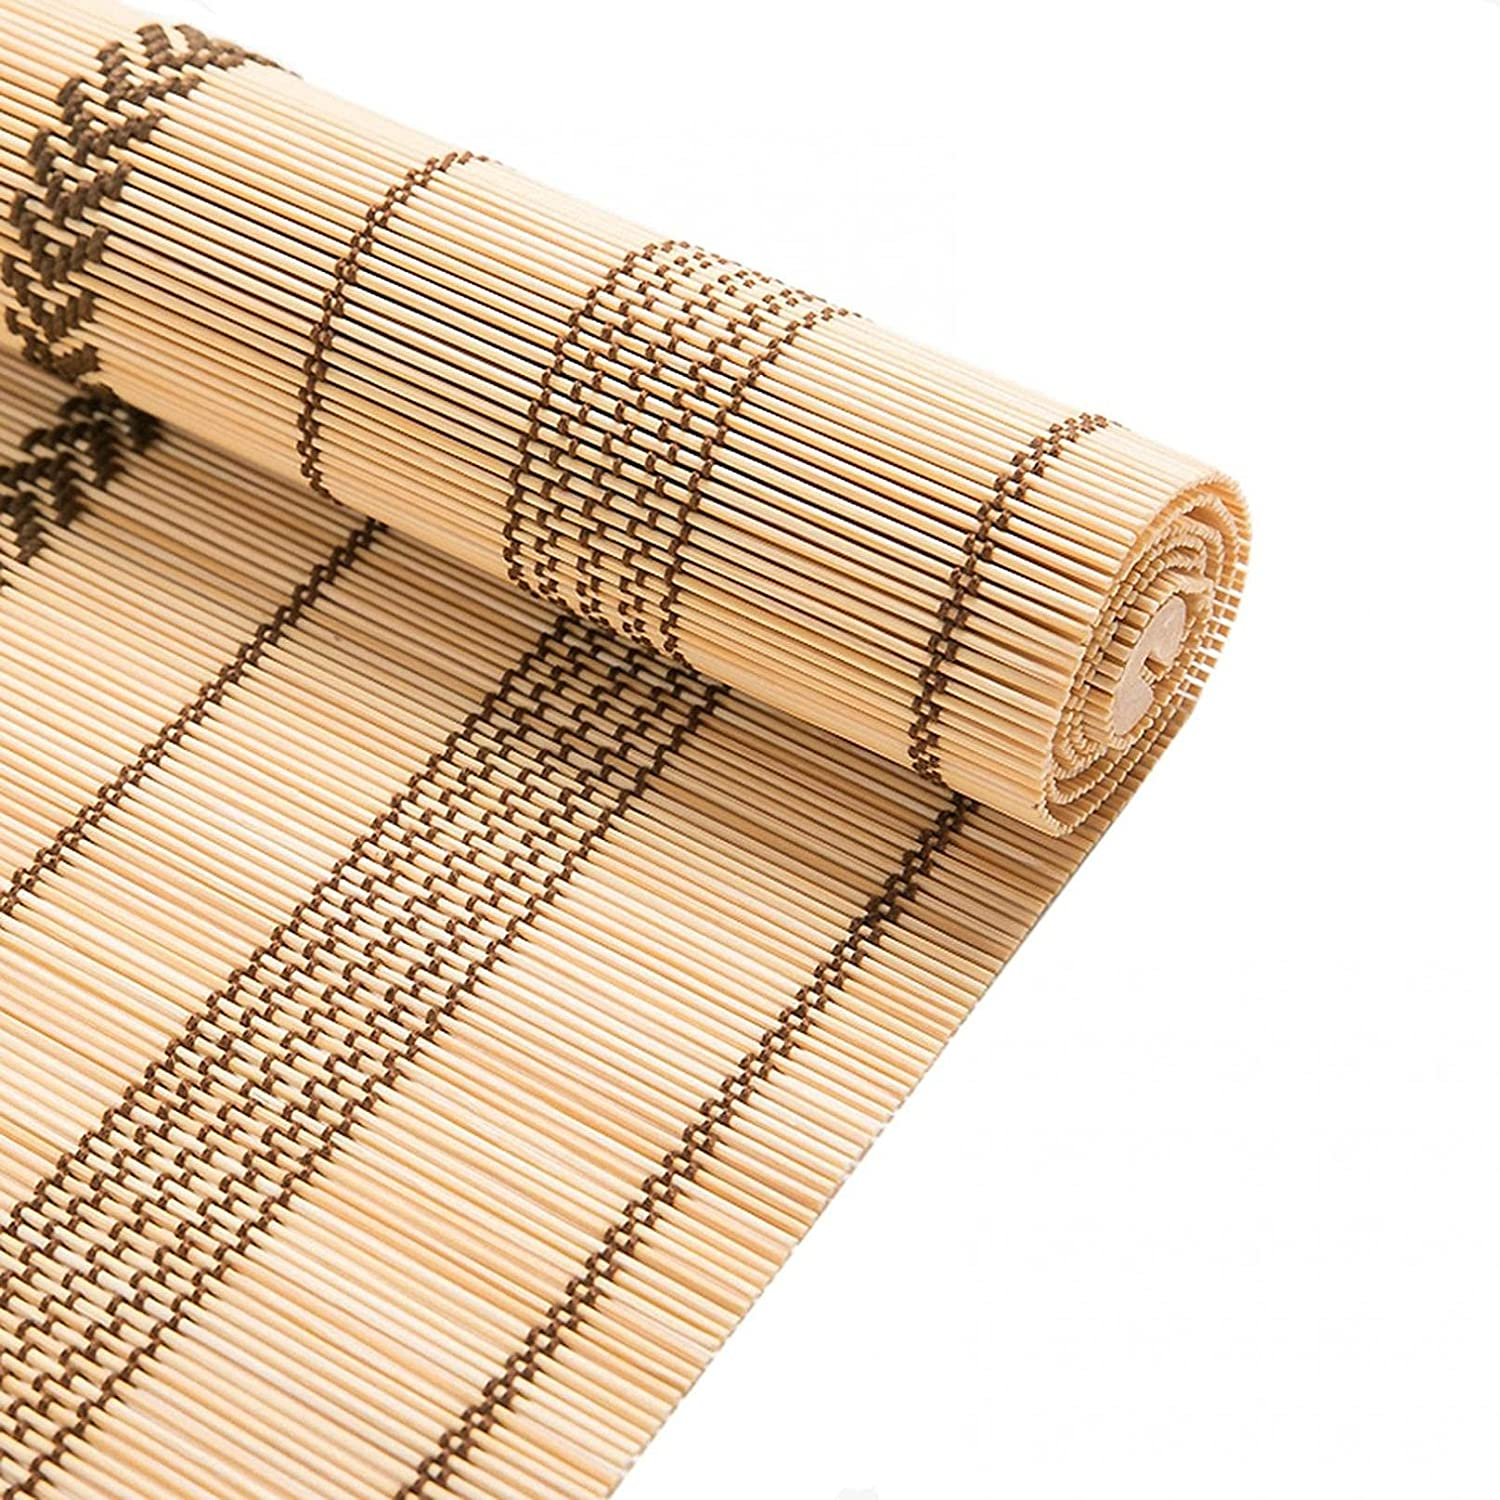 ZHJIUXING SF Bamboo Blinds - Window Max 72% OFF and Quality inspection Roller Doors for